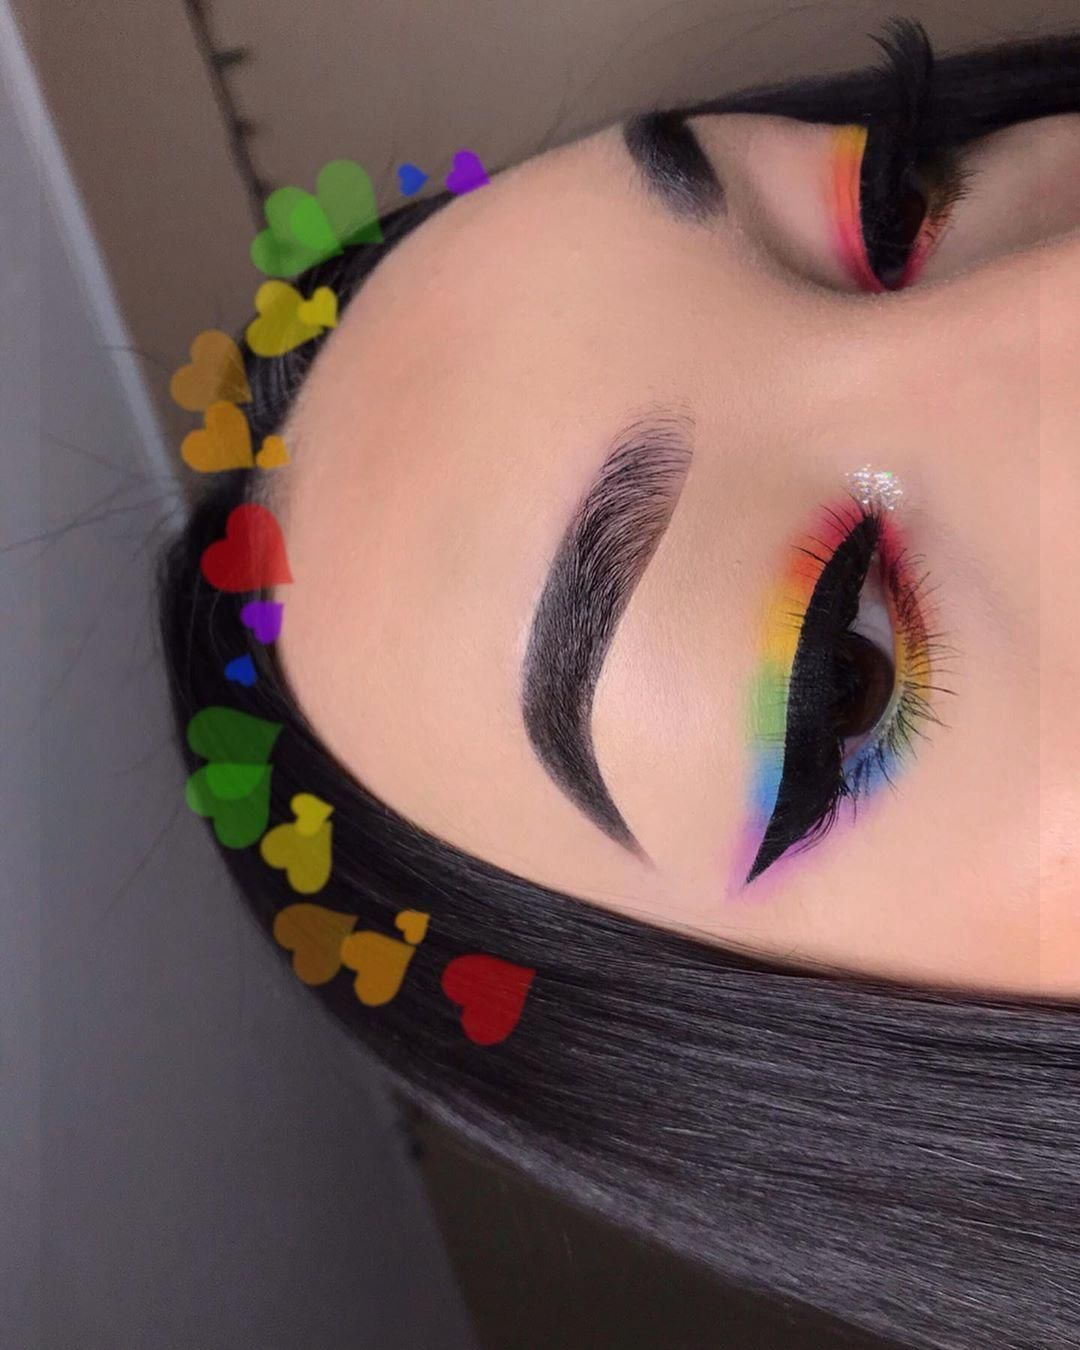 Photo of #eye #eyeliner #eyemakeup #Makeup #rainbow #makeupgrunge Rainbow Eye Makeup Eye Eyeliner øjenmakeup